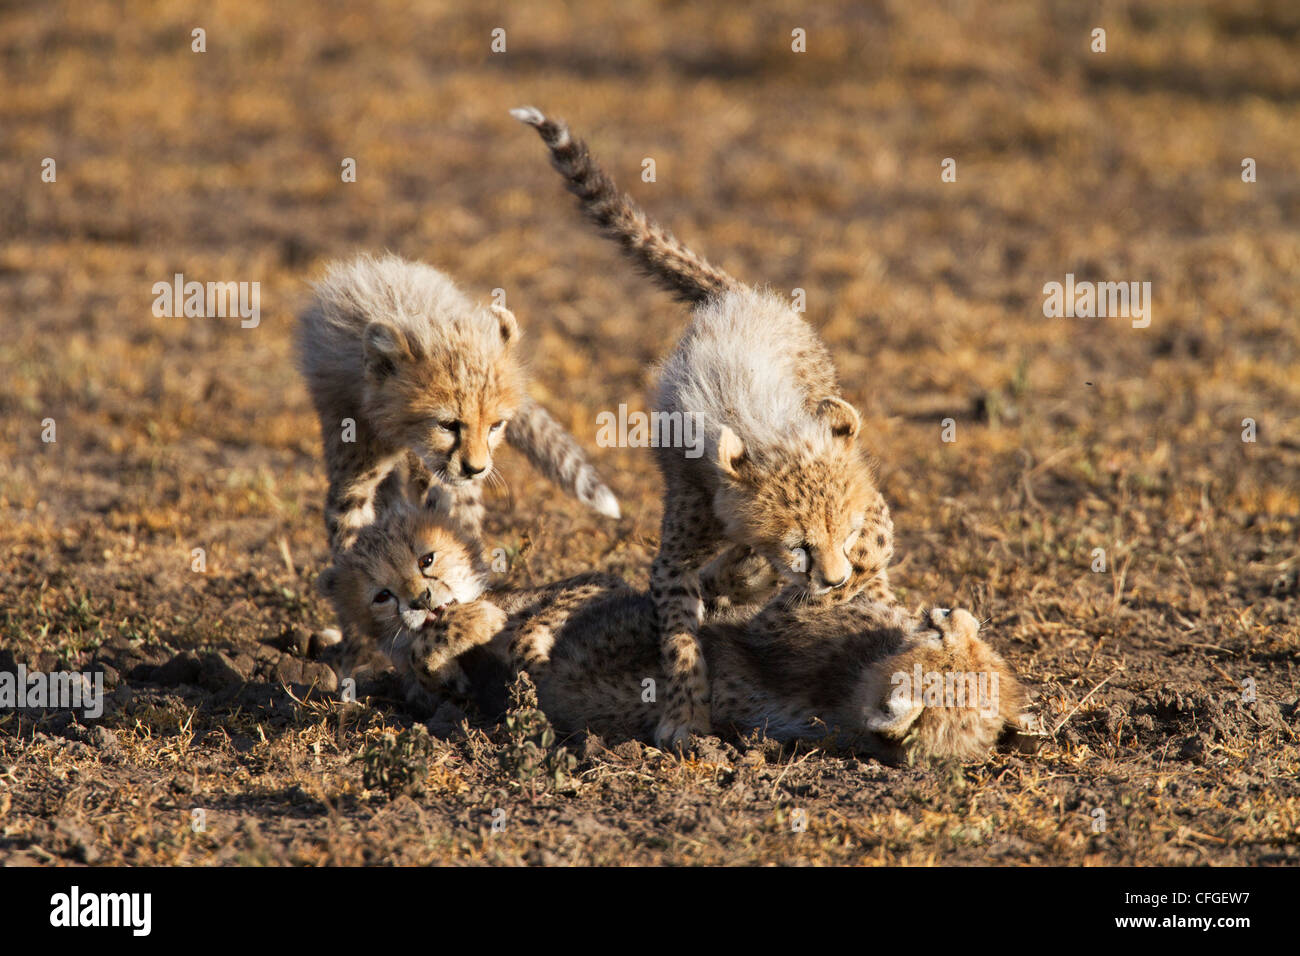 Four cheetah clubs playing - Stock Image